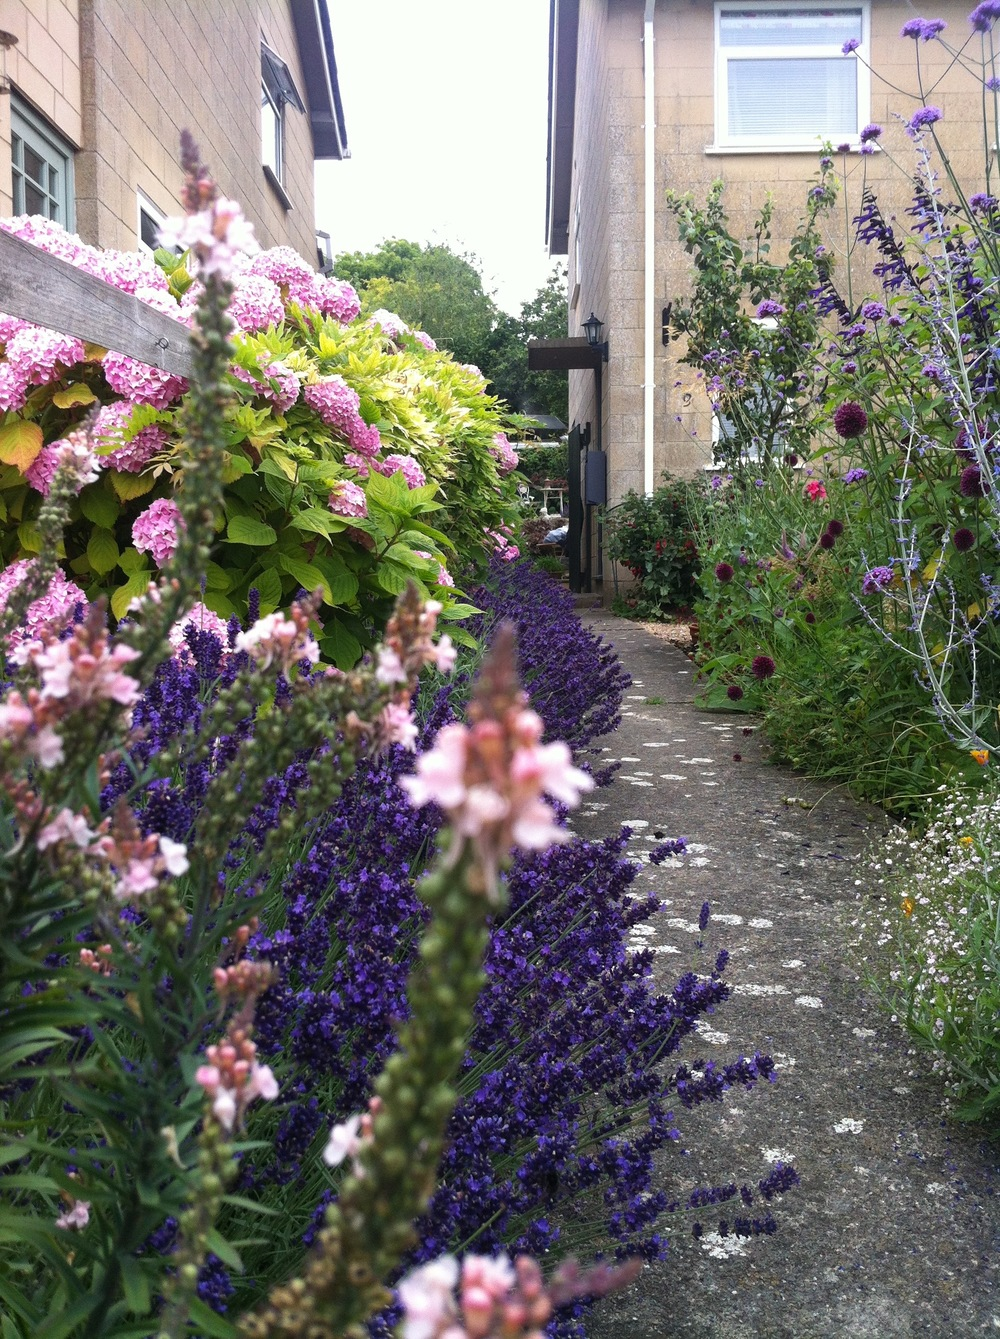 Soft planting of purples, blues, pinks and silvers